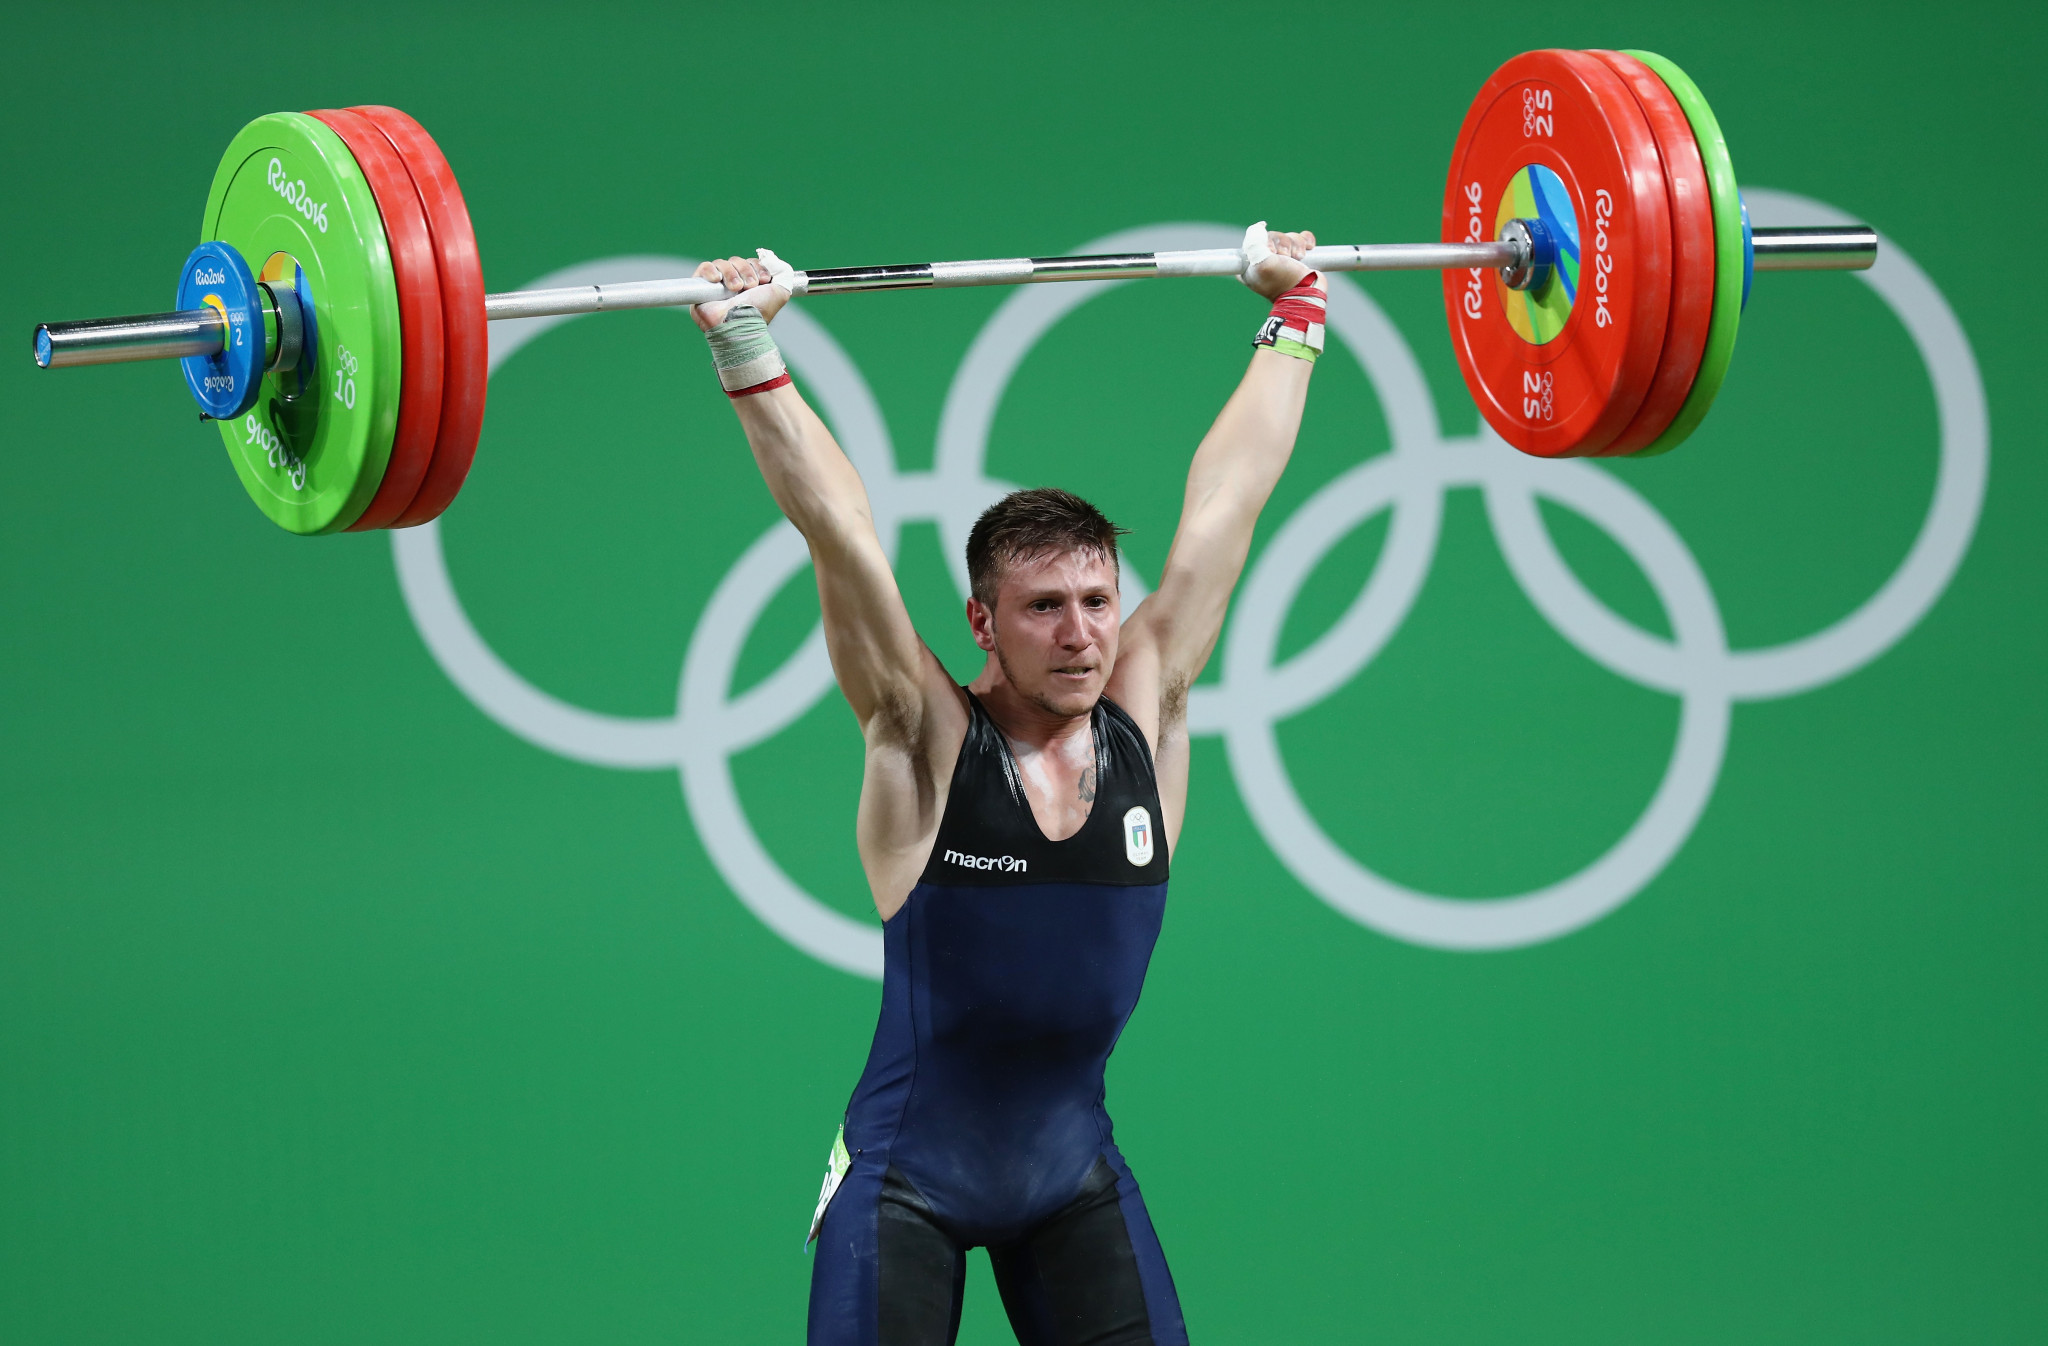 Italian weightlifter Scarantino racks up third European title